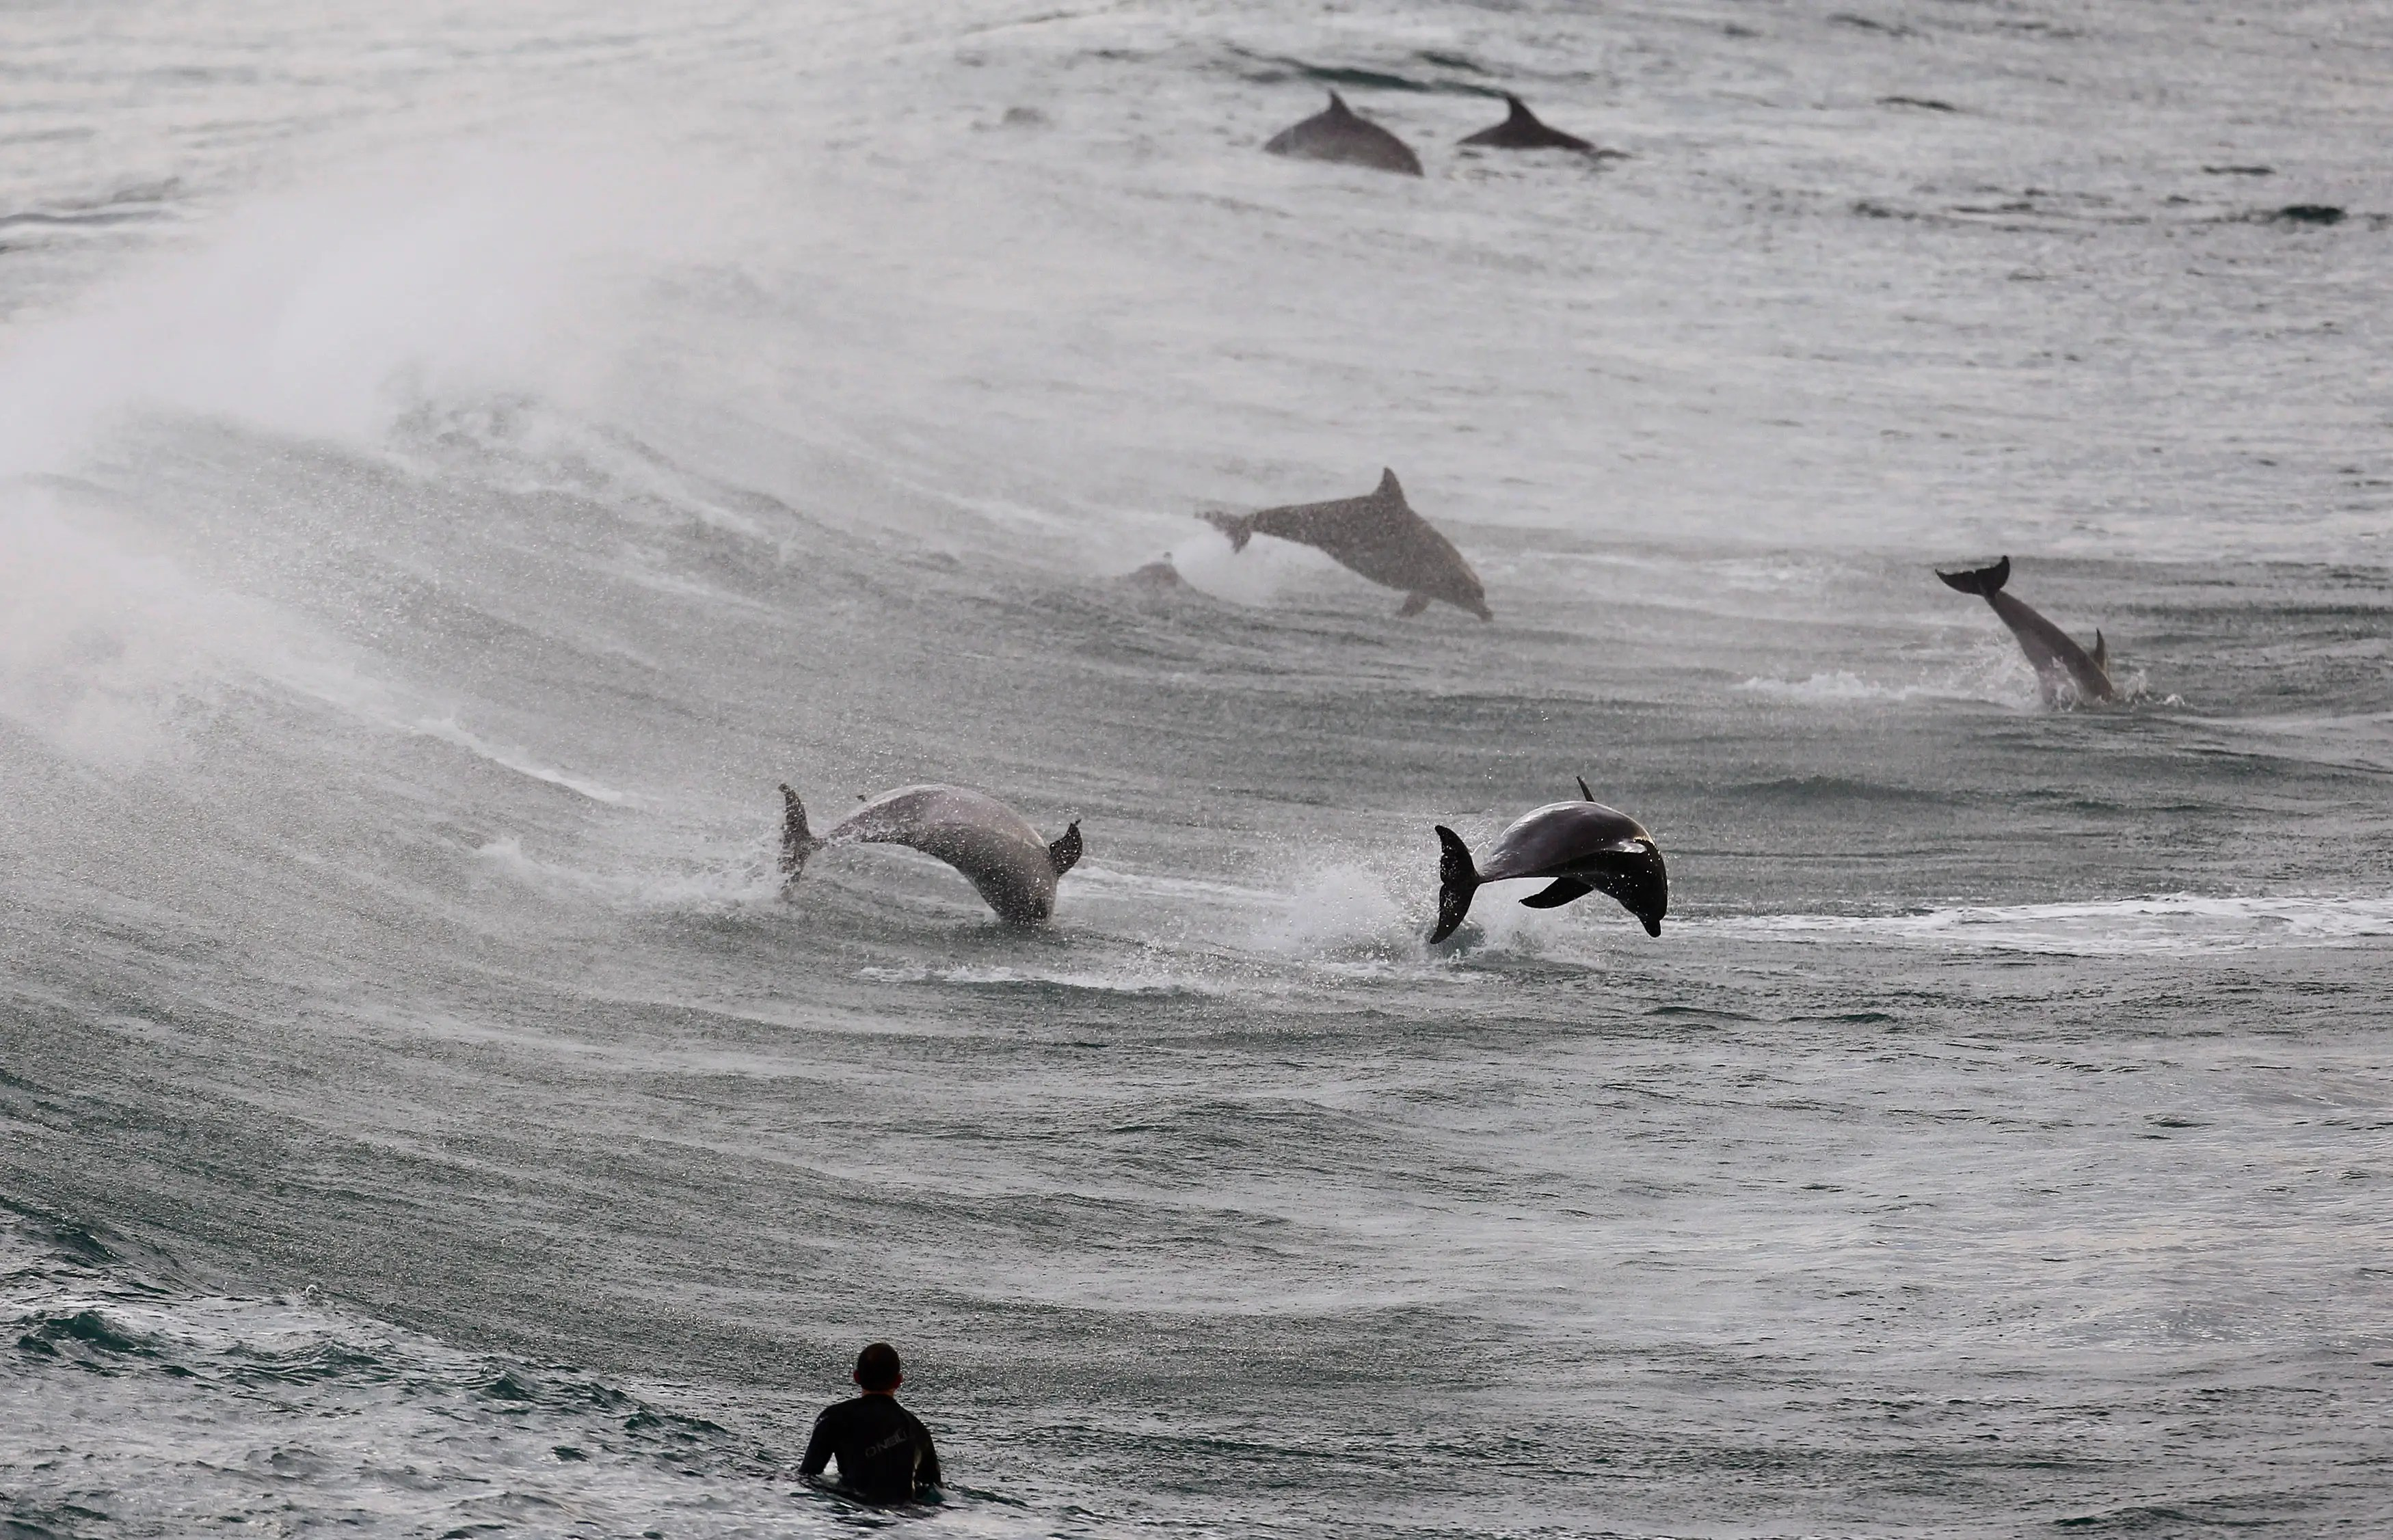 A surfer watches a group of dolphins leap in the waters of Bondi Beach in Sydney.